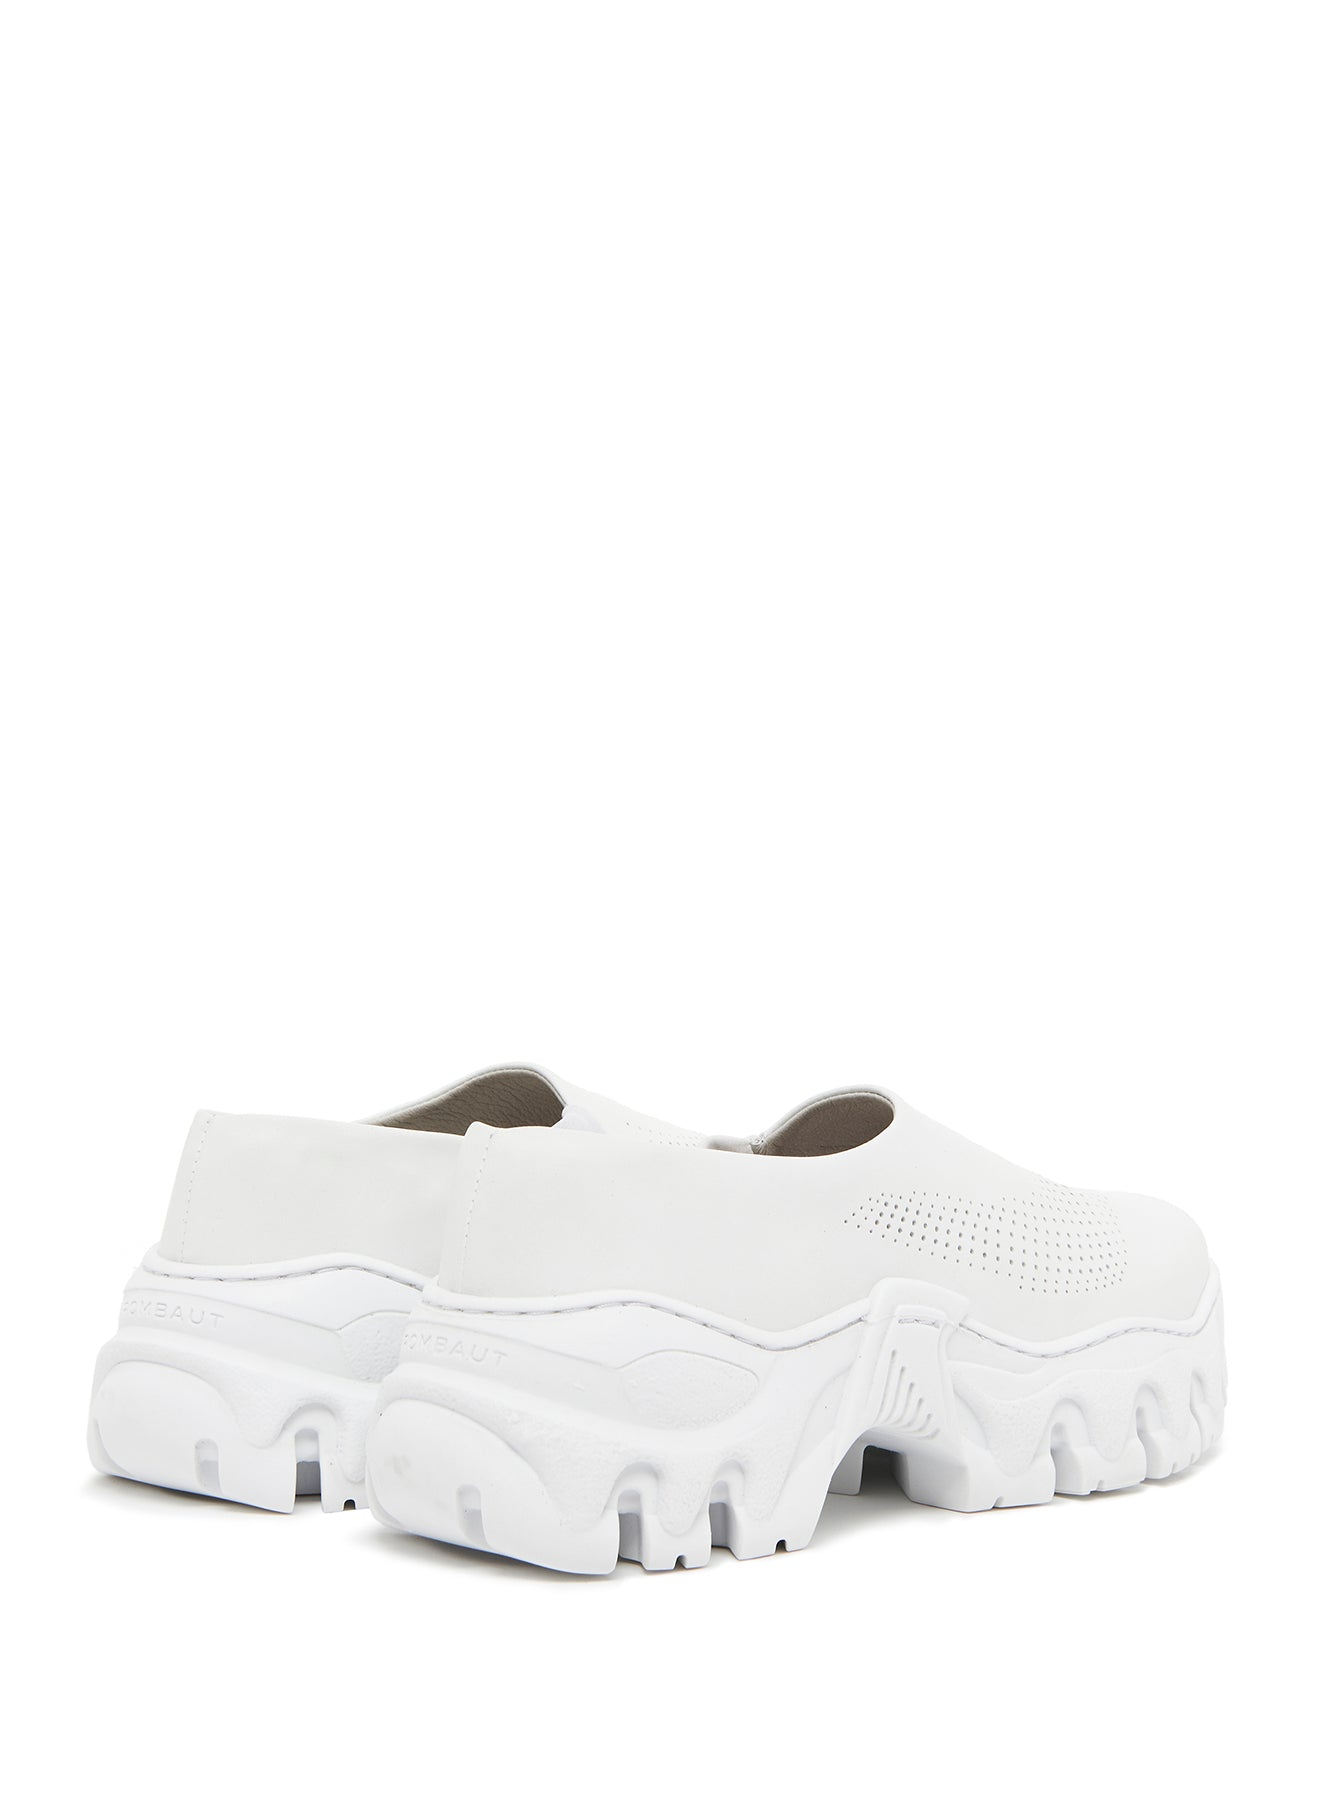 BOCCACCIO II CLOG FUTURE LEATHER WHITE